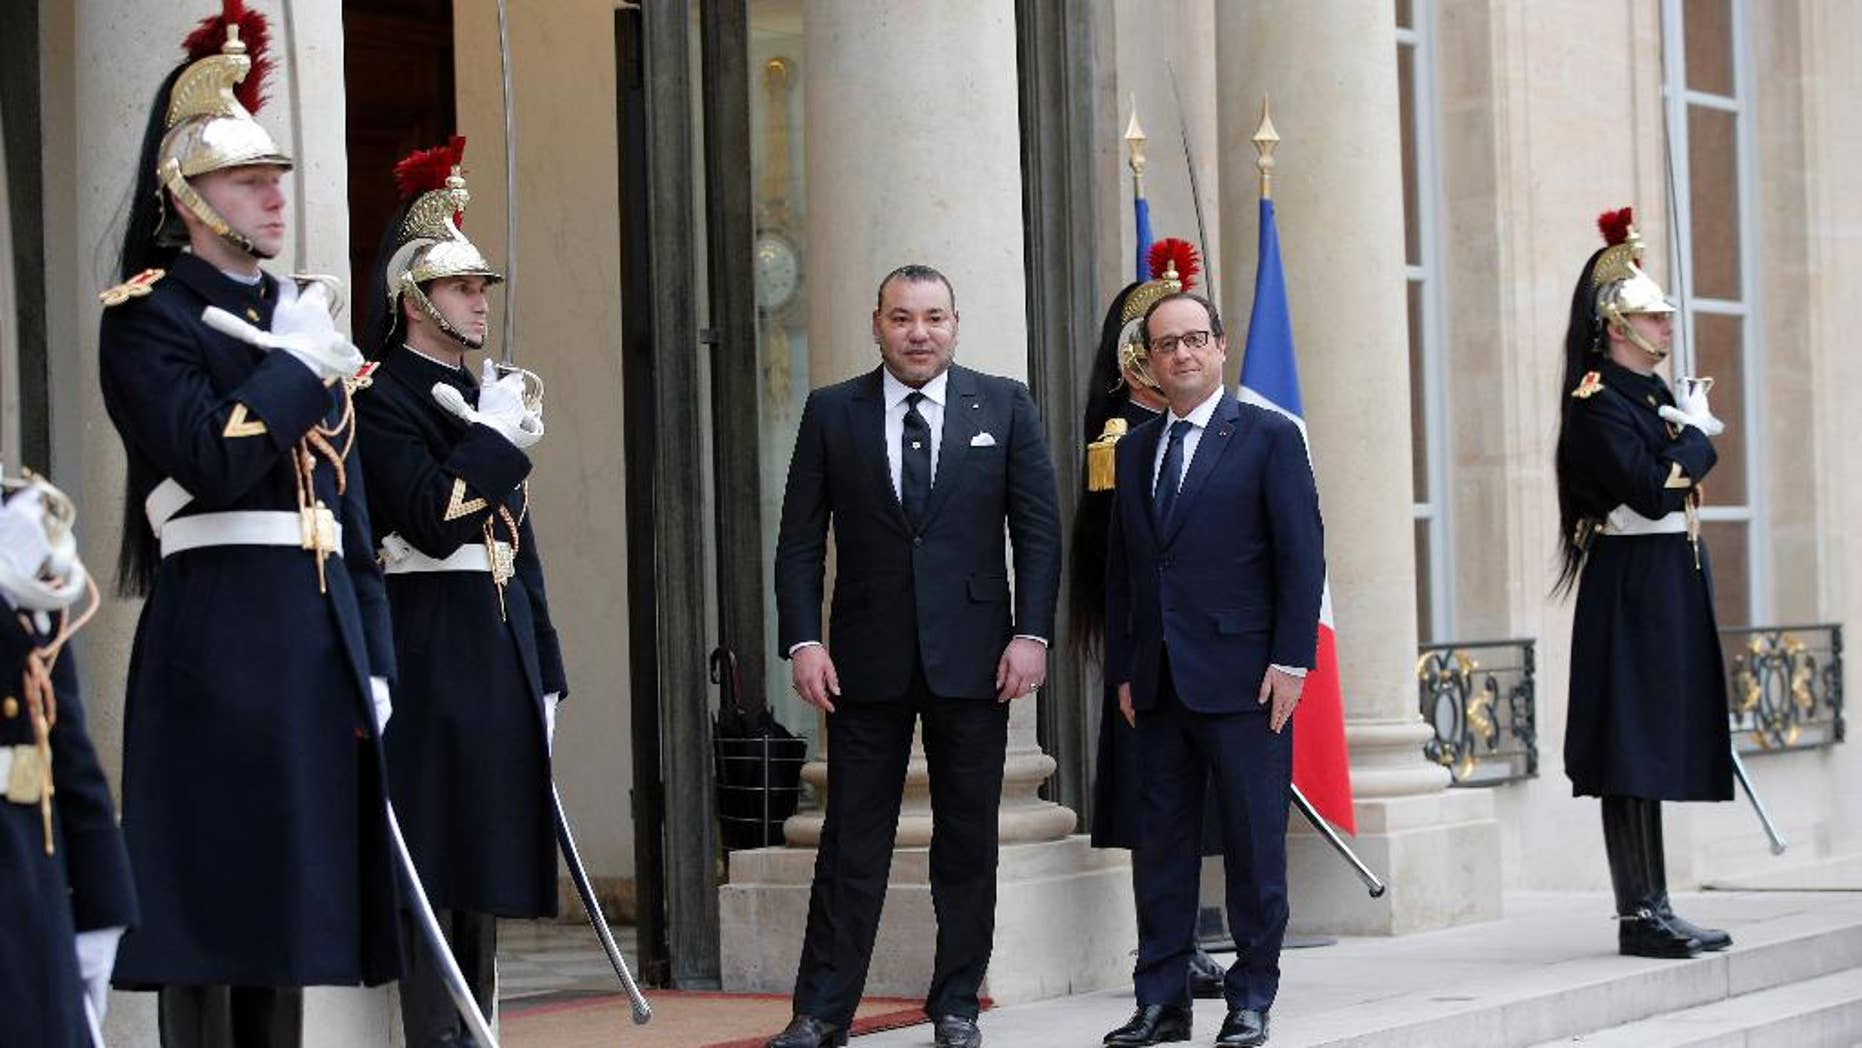 France's President Francois Hollande, right, welcomes Morocco's King Mohammed VI before a meeting at the Elysee Palace, in Paris, France, Monday, Feb. 9, 2015. (AP Photo/Christophe Ena)